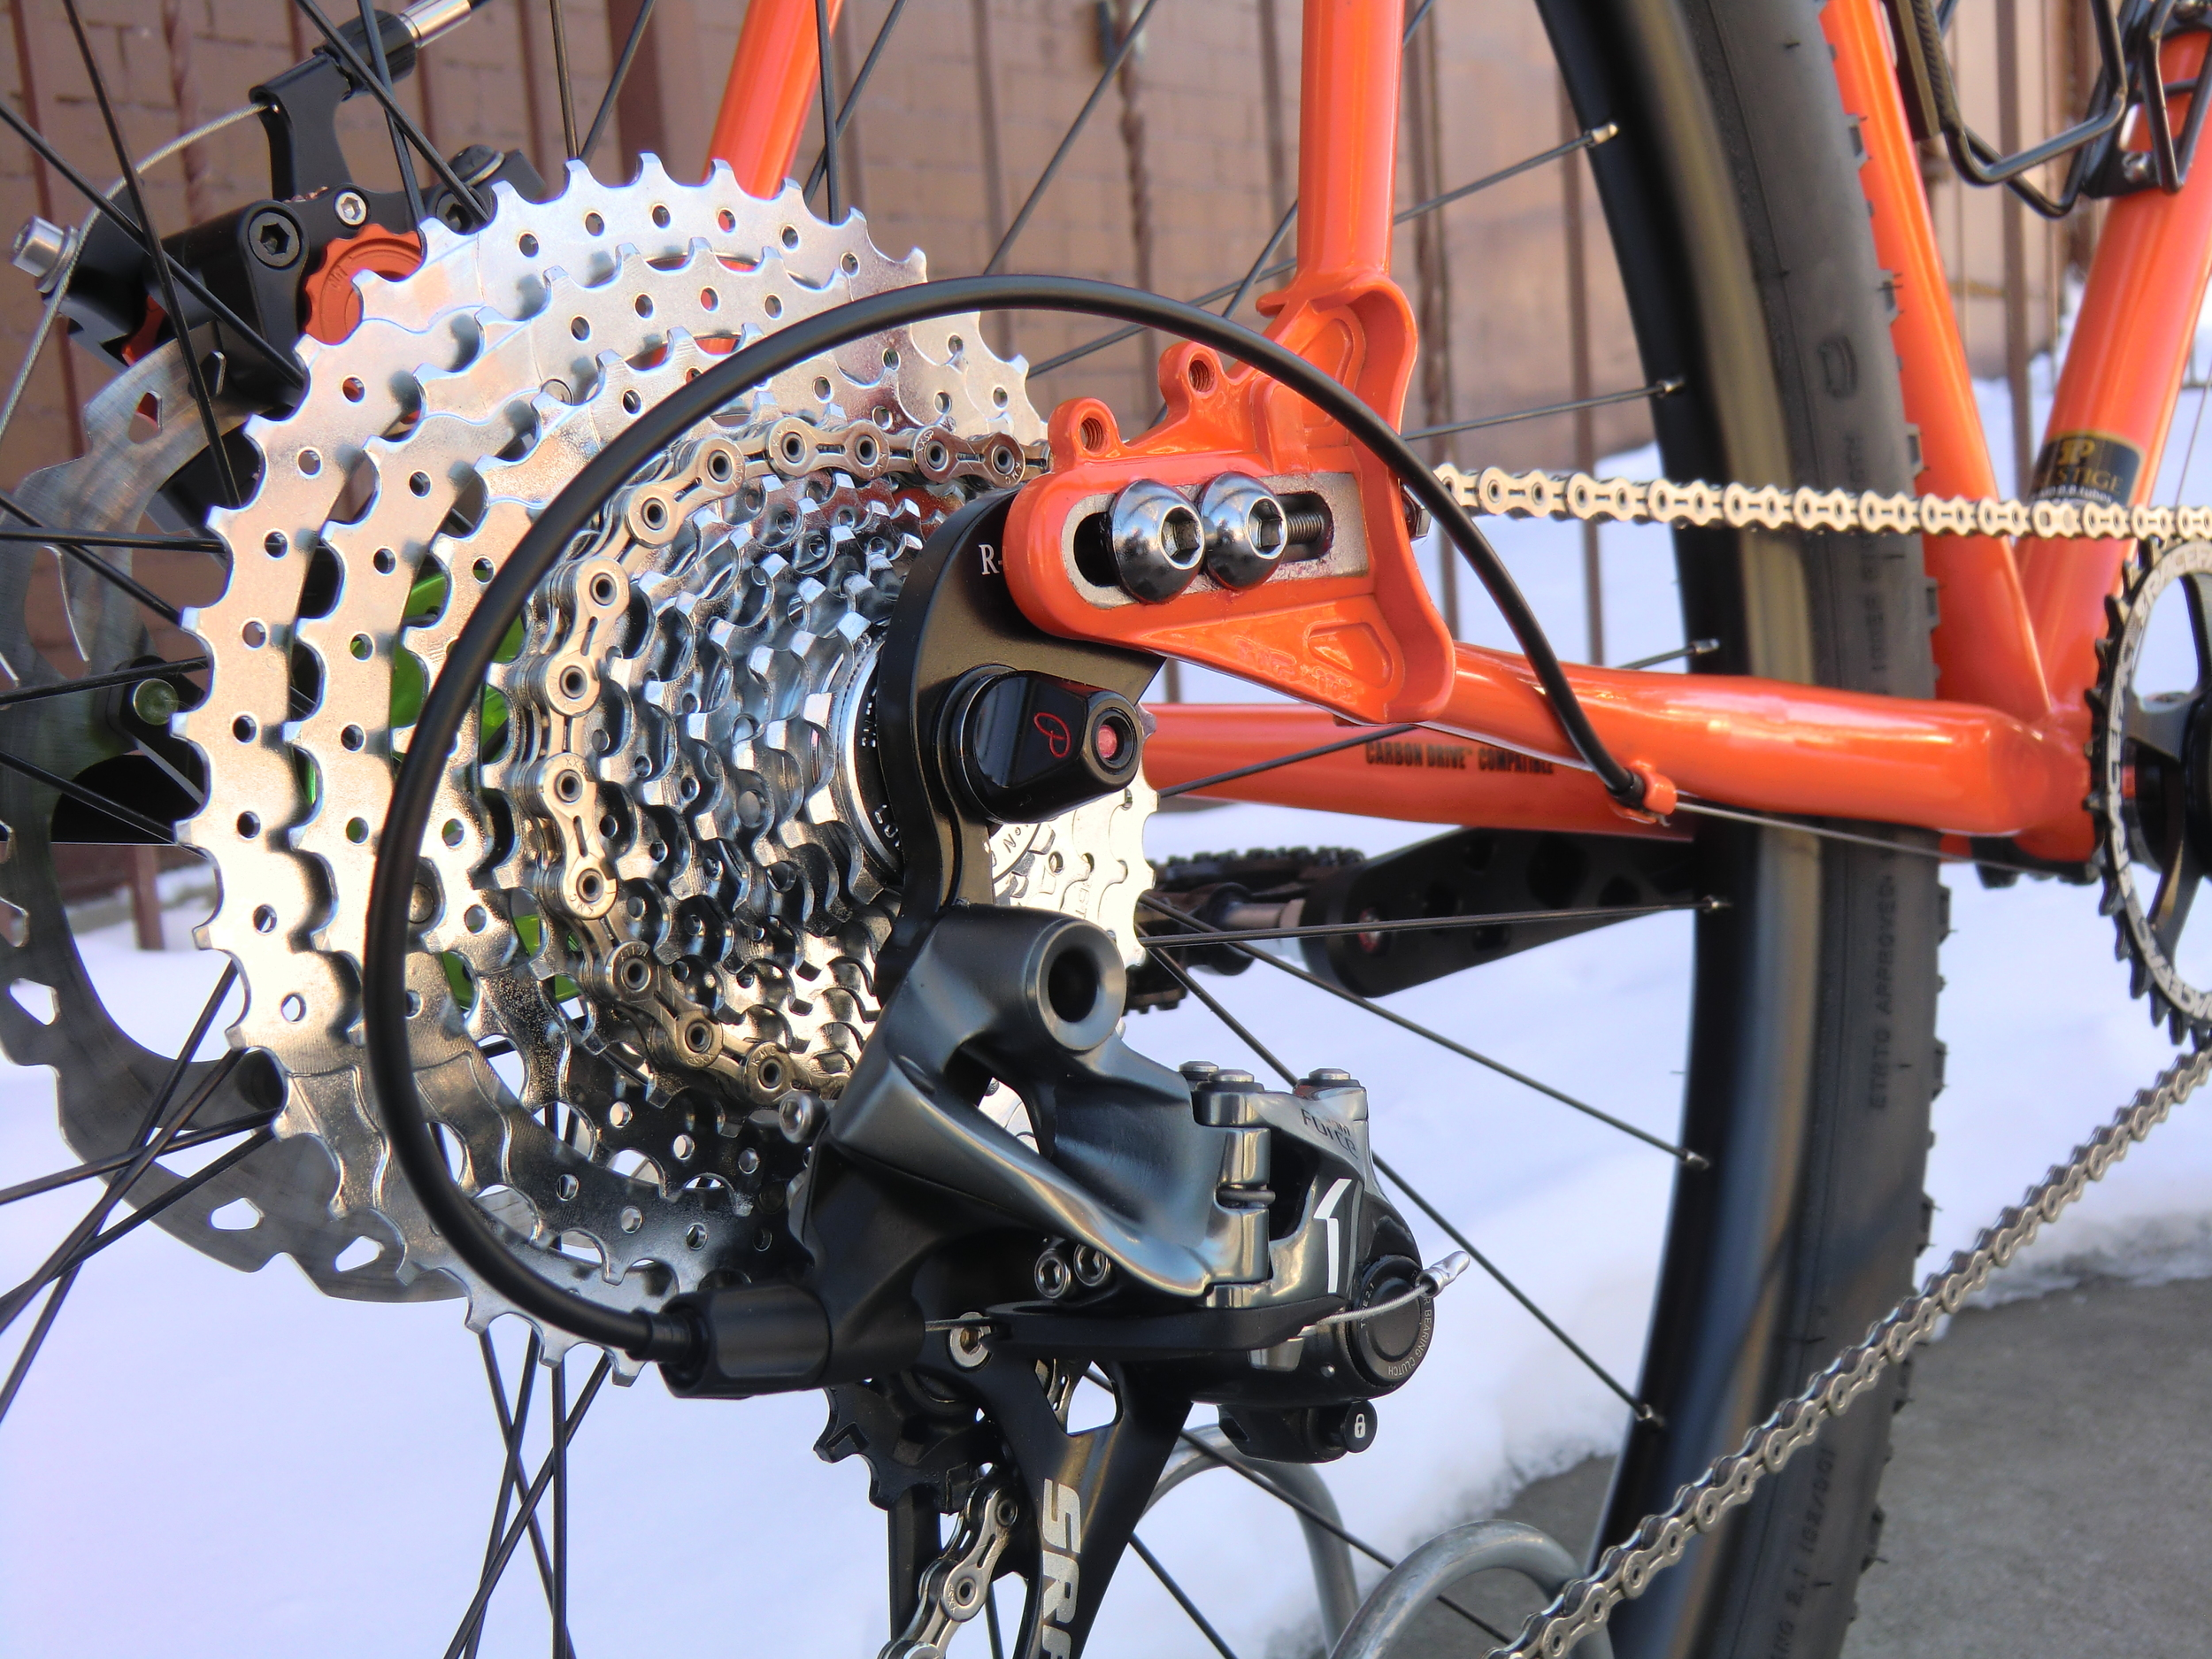 IRD's 11-speed cassette is compatible with SRAM road shifters